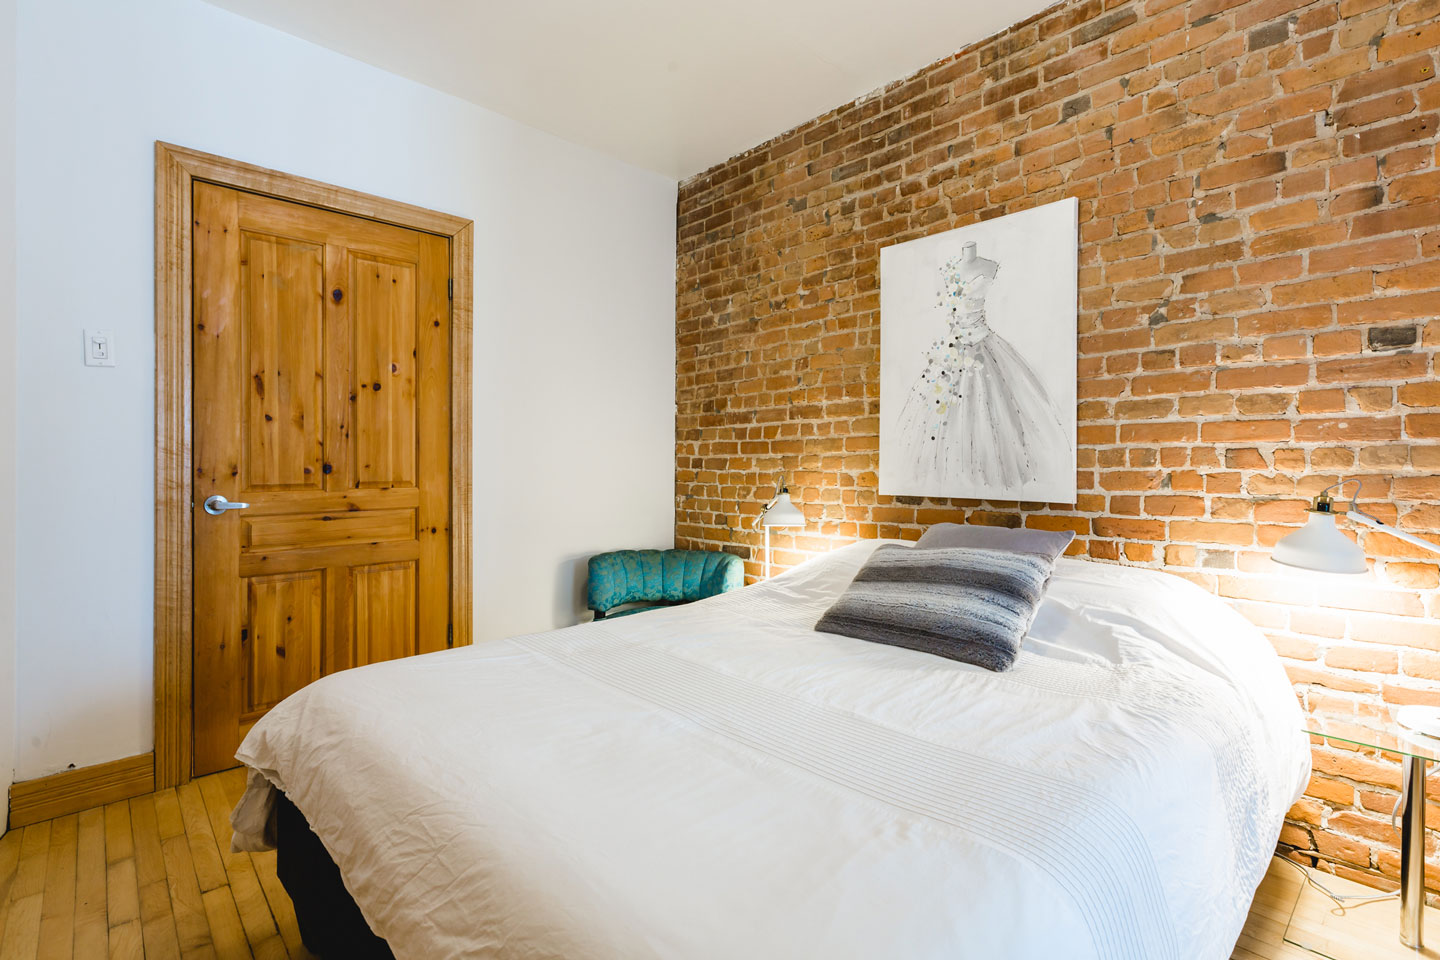 City chalet: bedroom with brick wall and queen bed with comfortable memory foam mattress